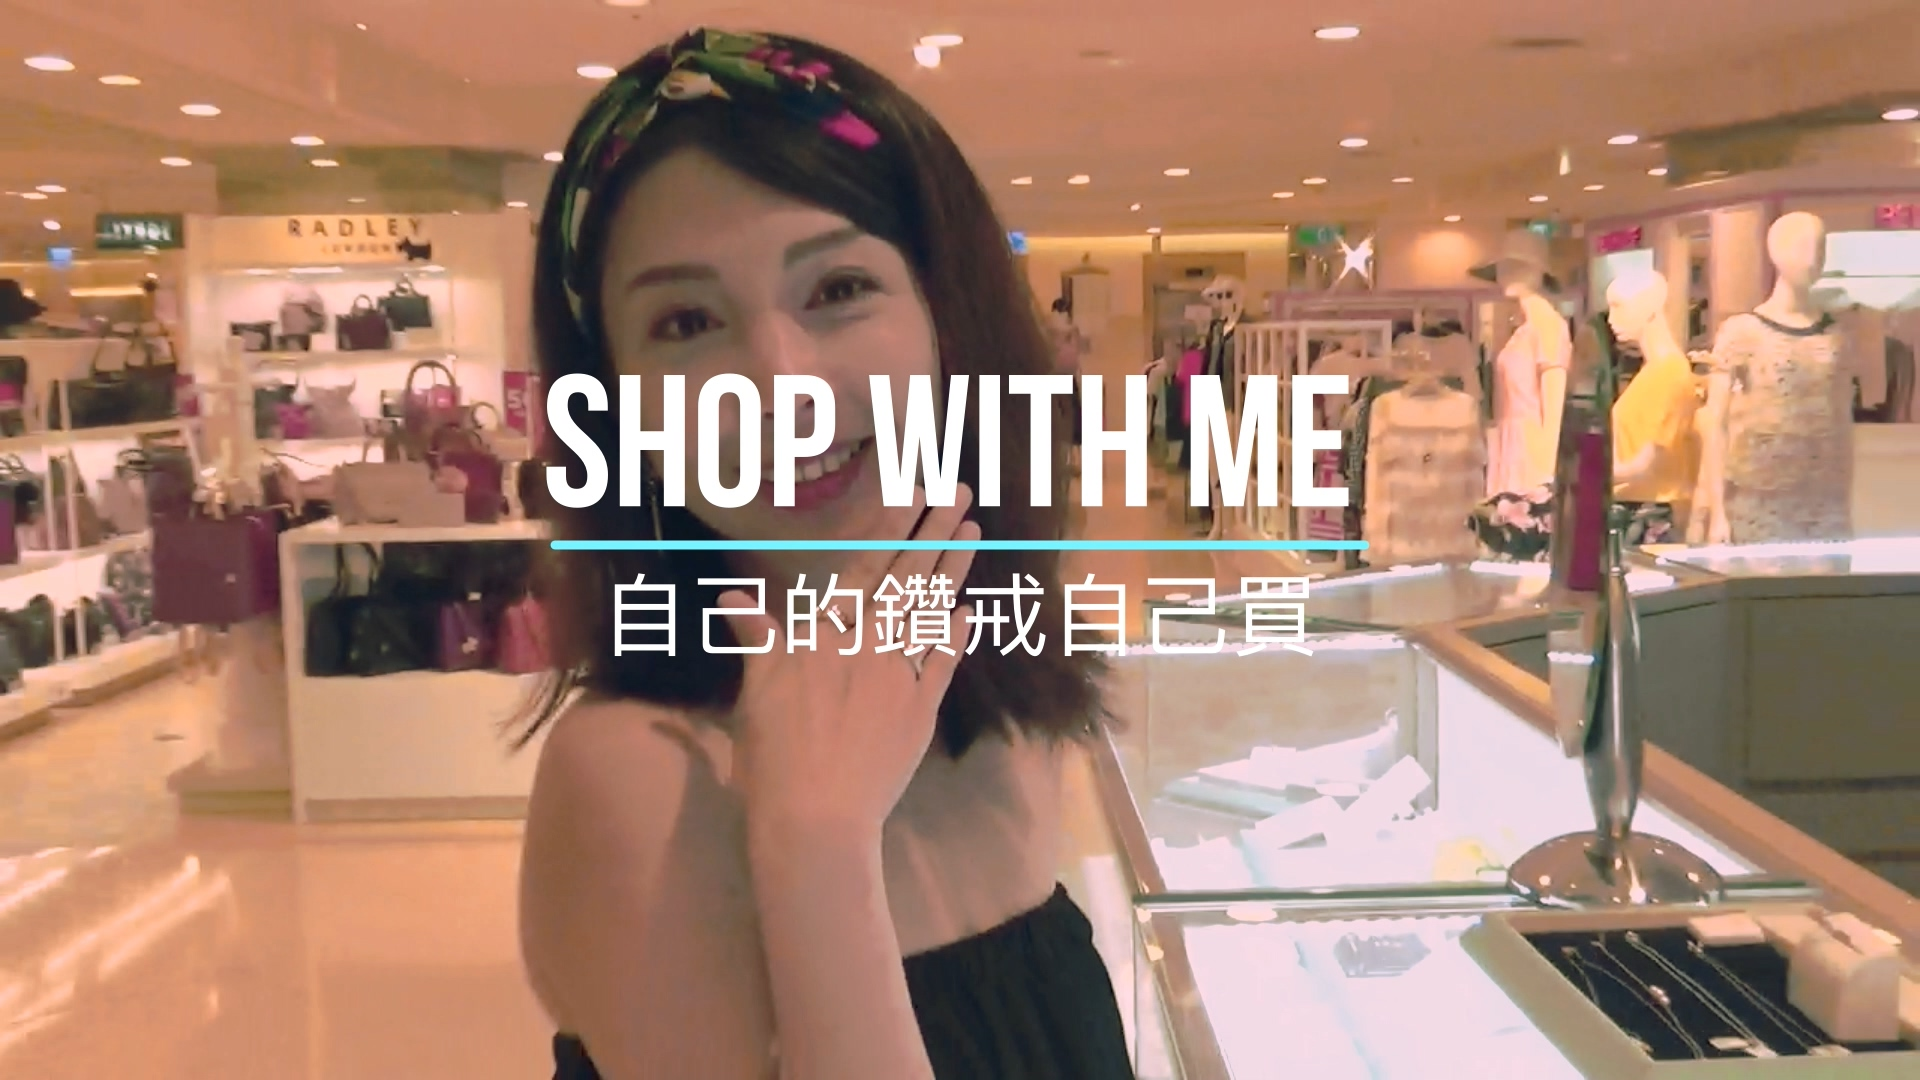 YOUTUBERSunnie-shop with me單元